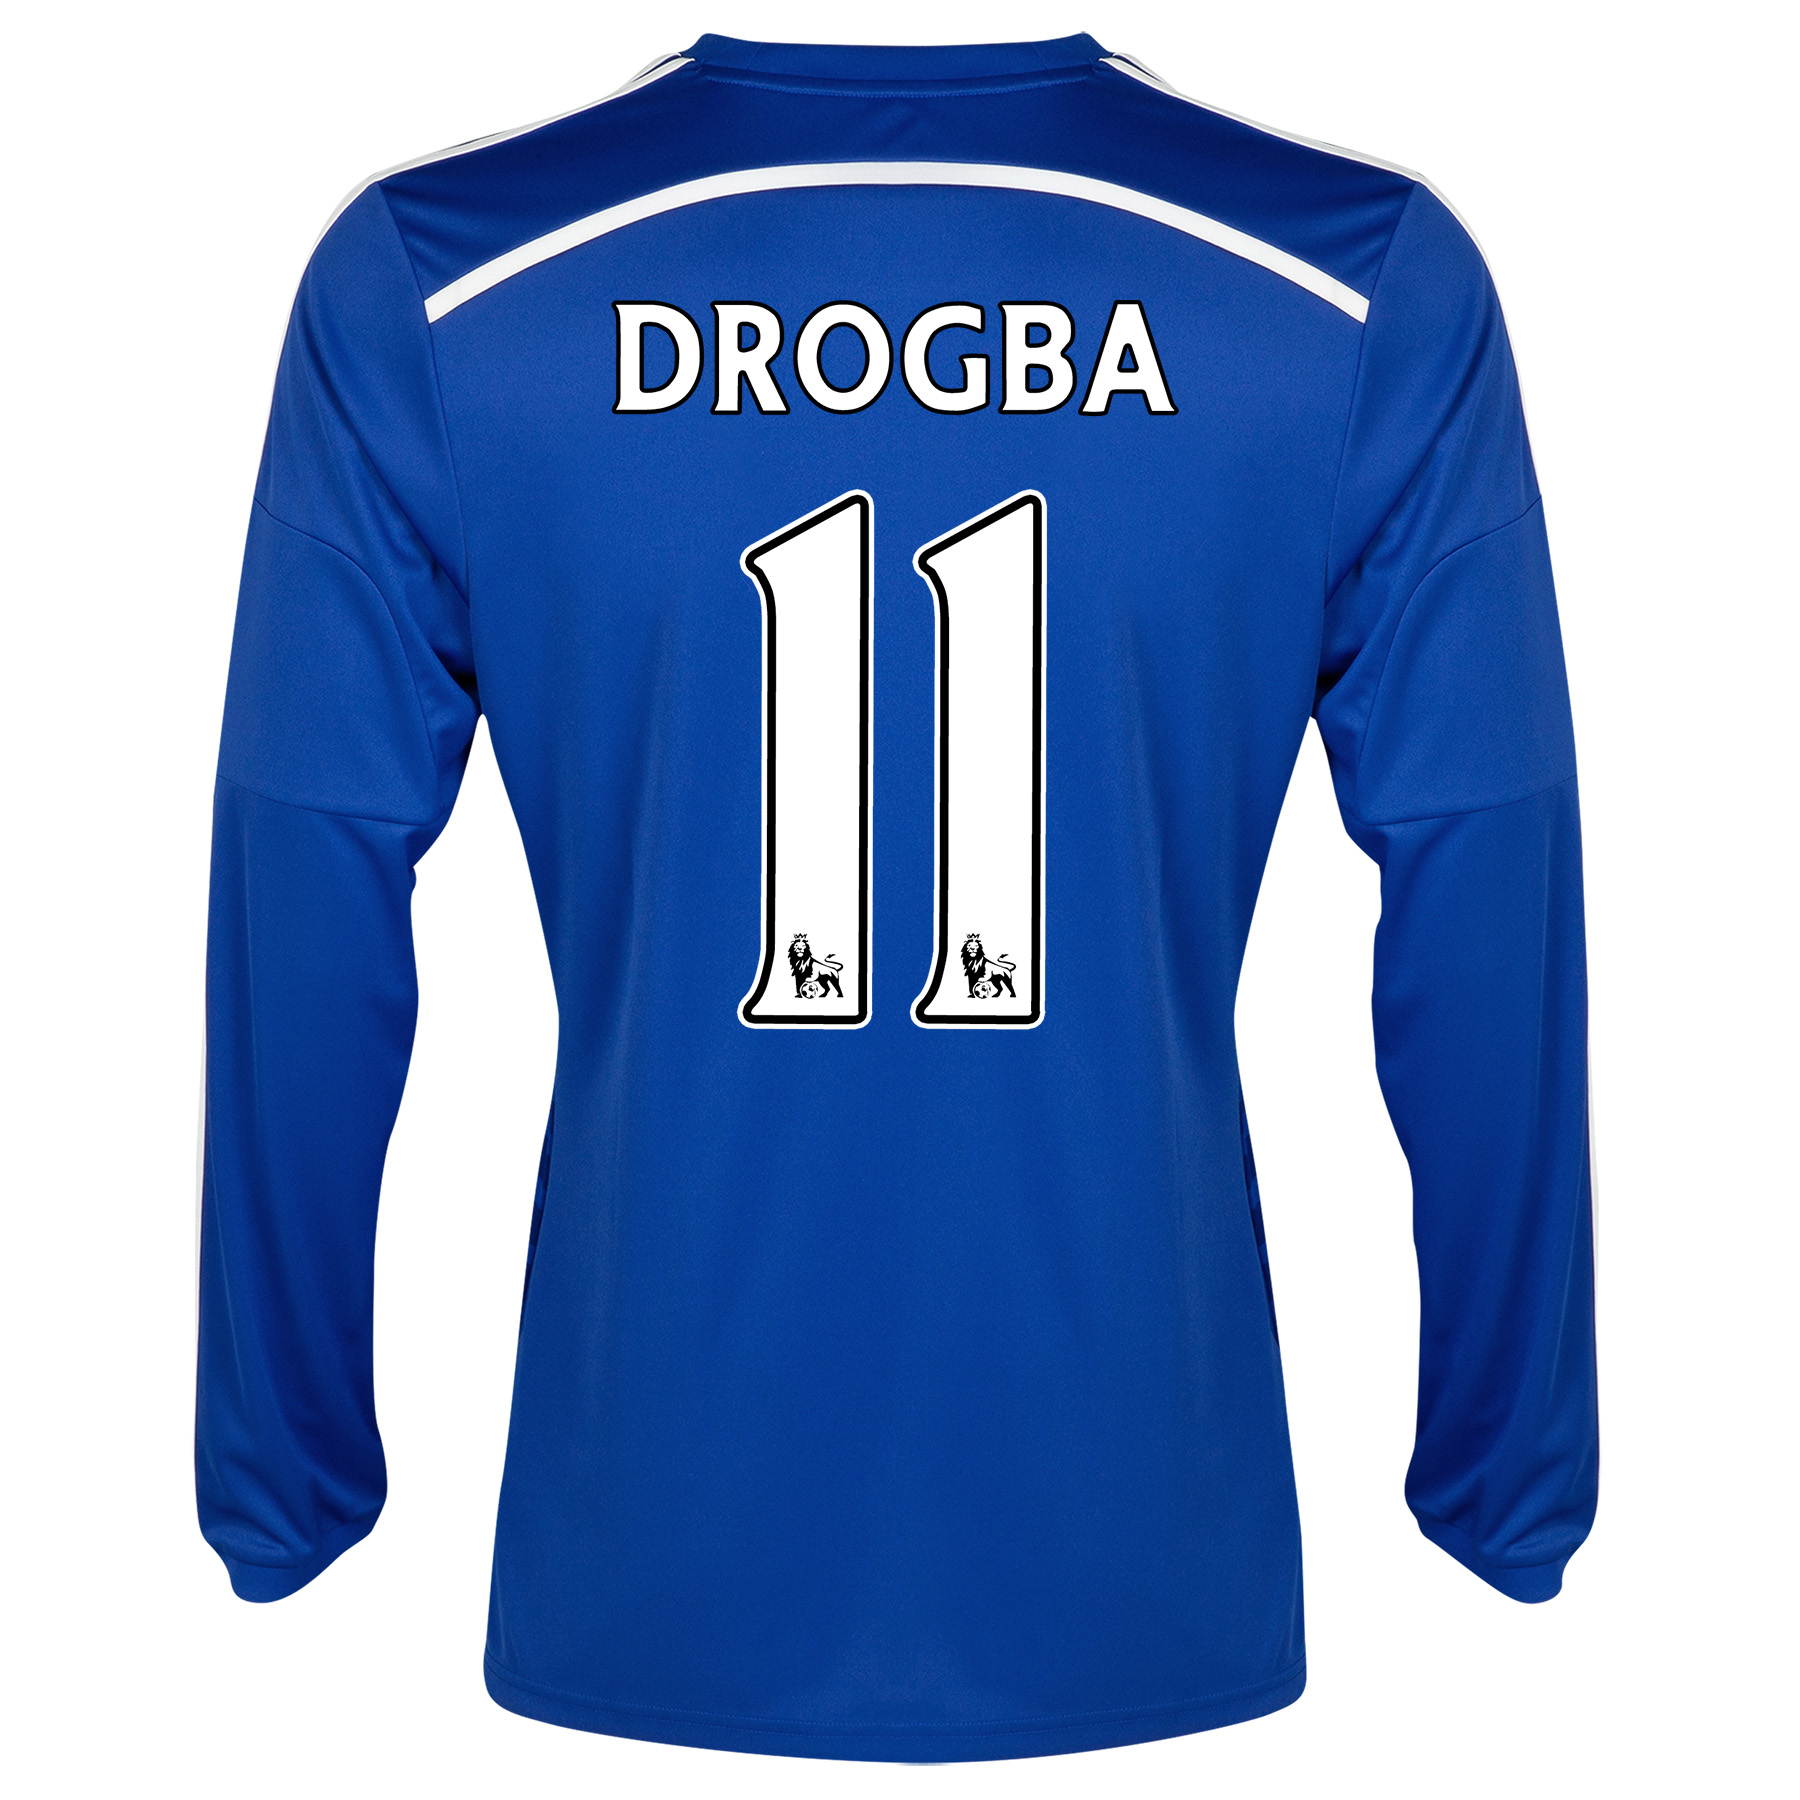 Chelsea Home Shirt 2014/15 - Long Sleeve - Kids with Drogba 11 printing